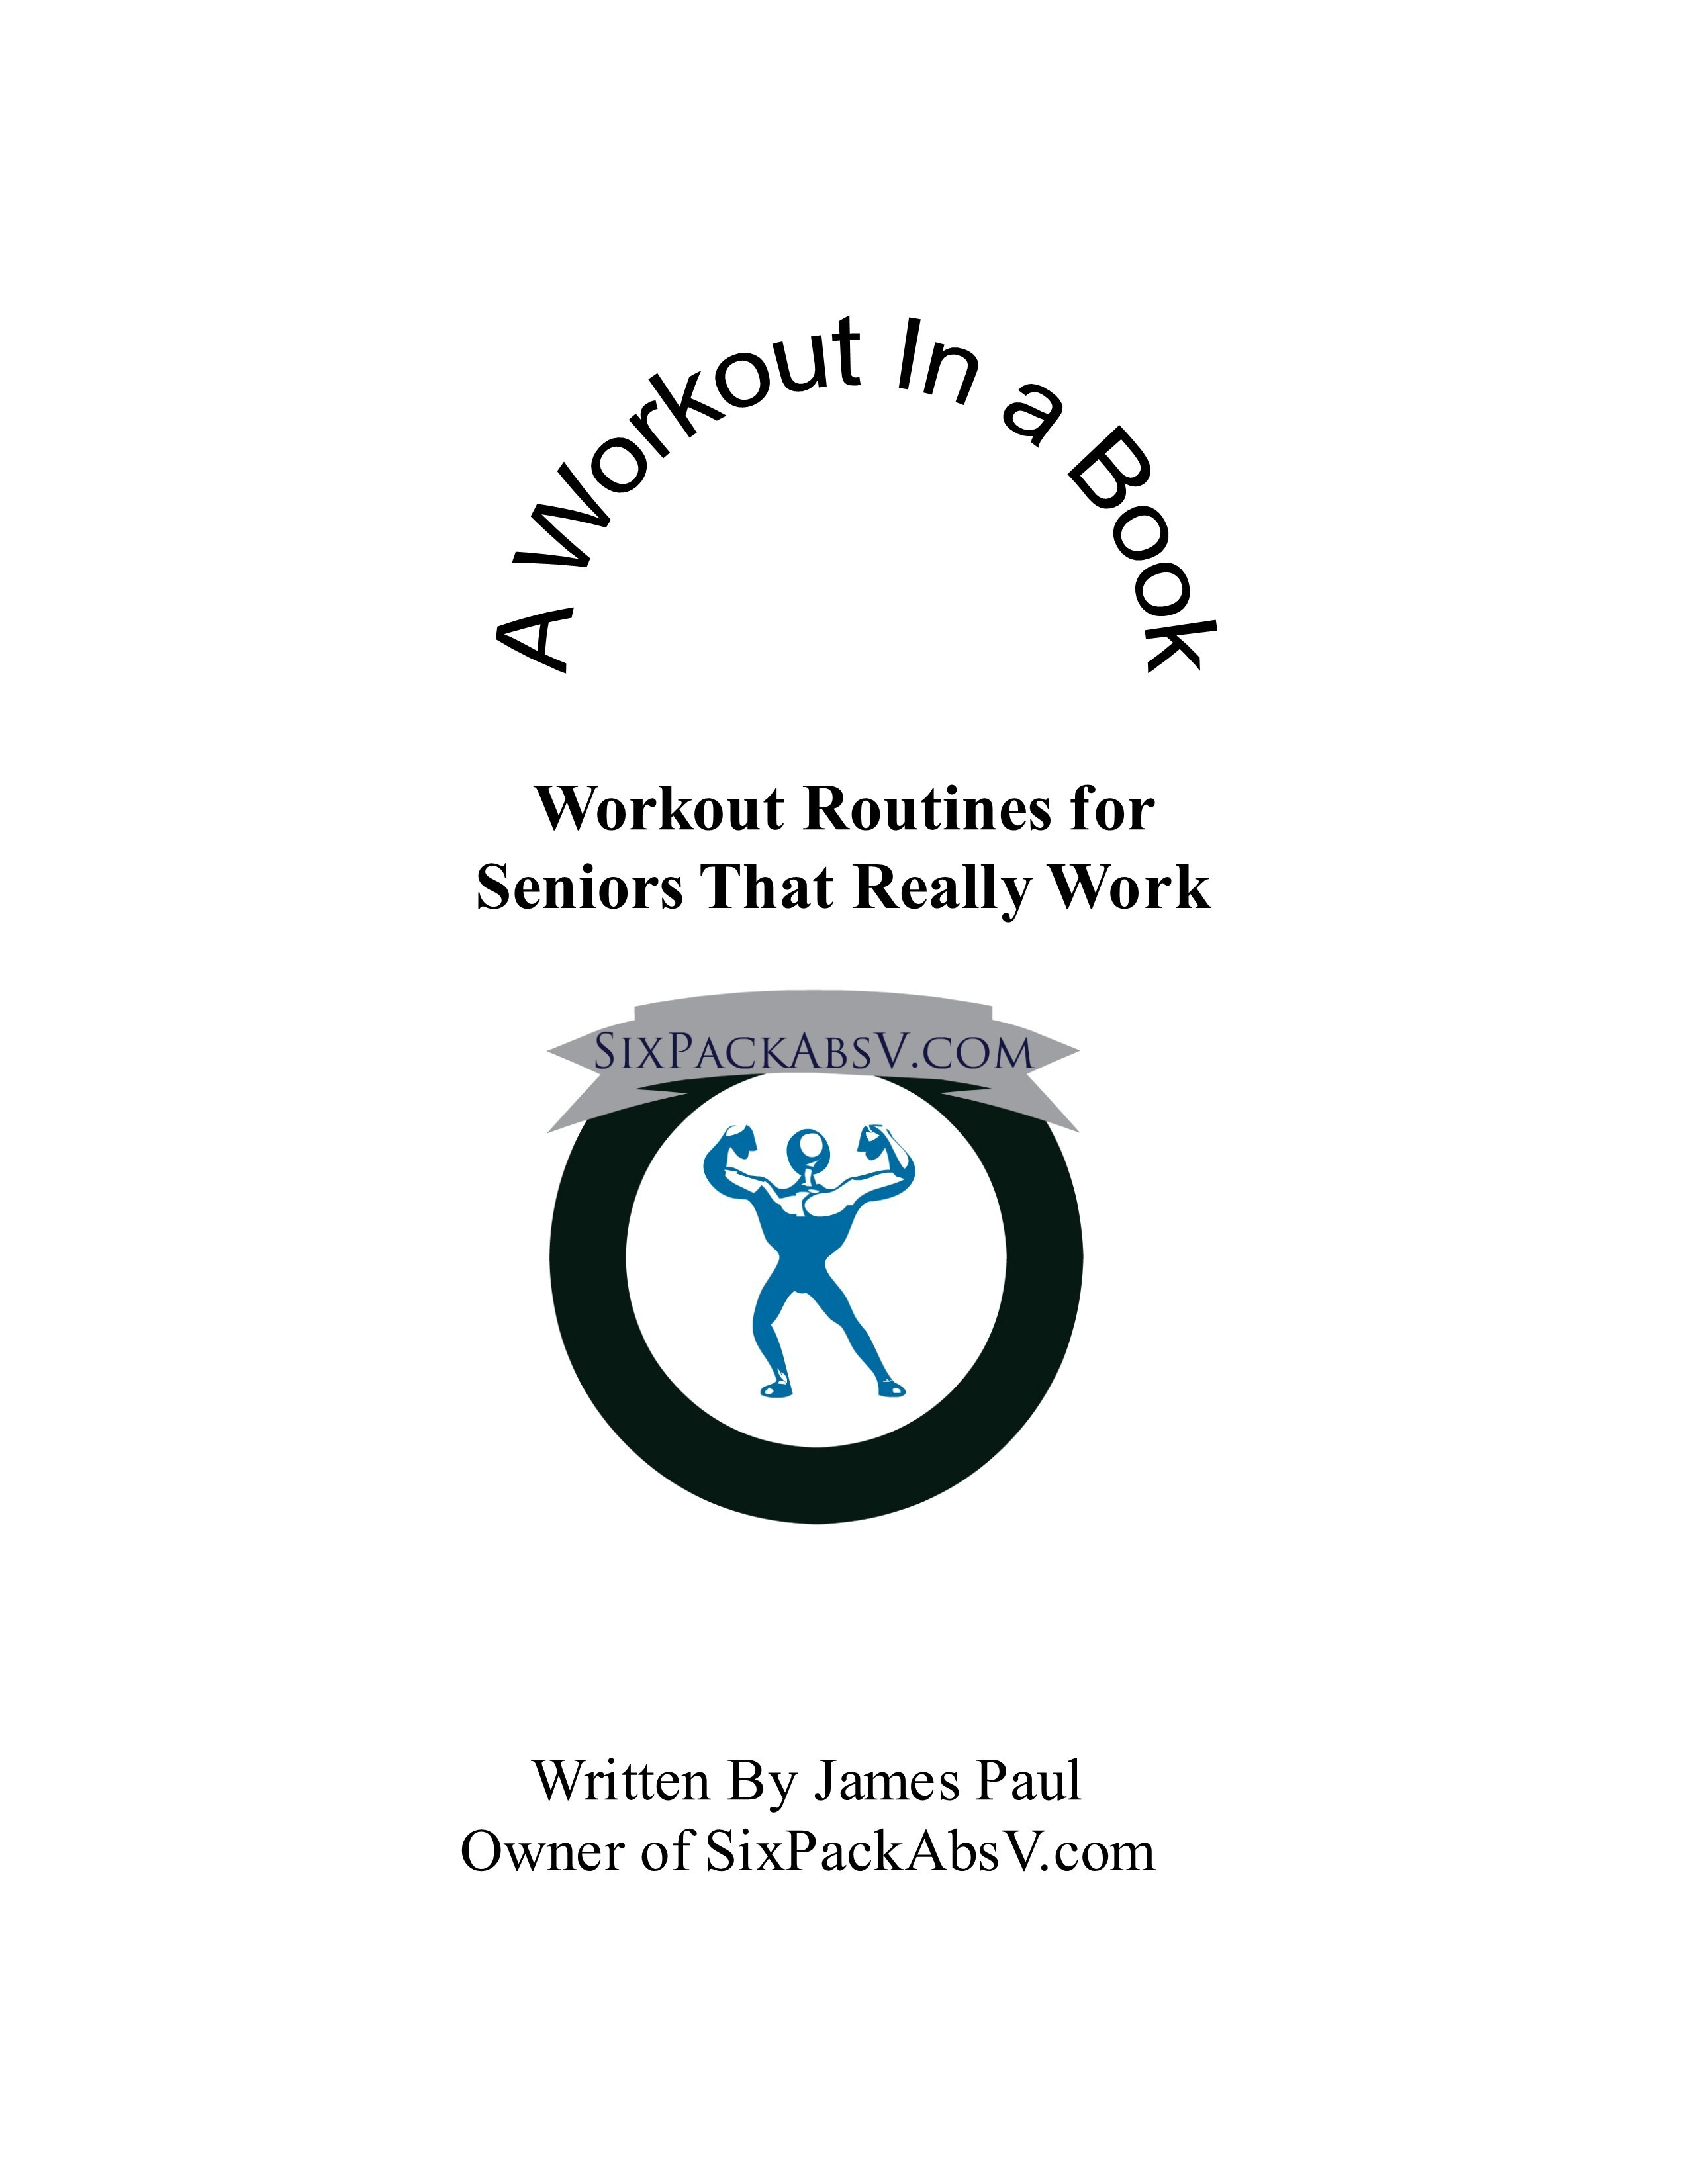 A Workout In A Book: Workout Routines for Seniors That Really Work